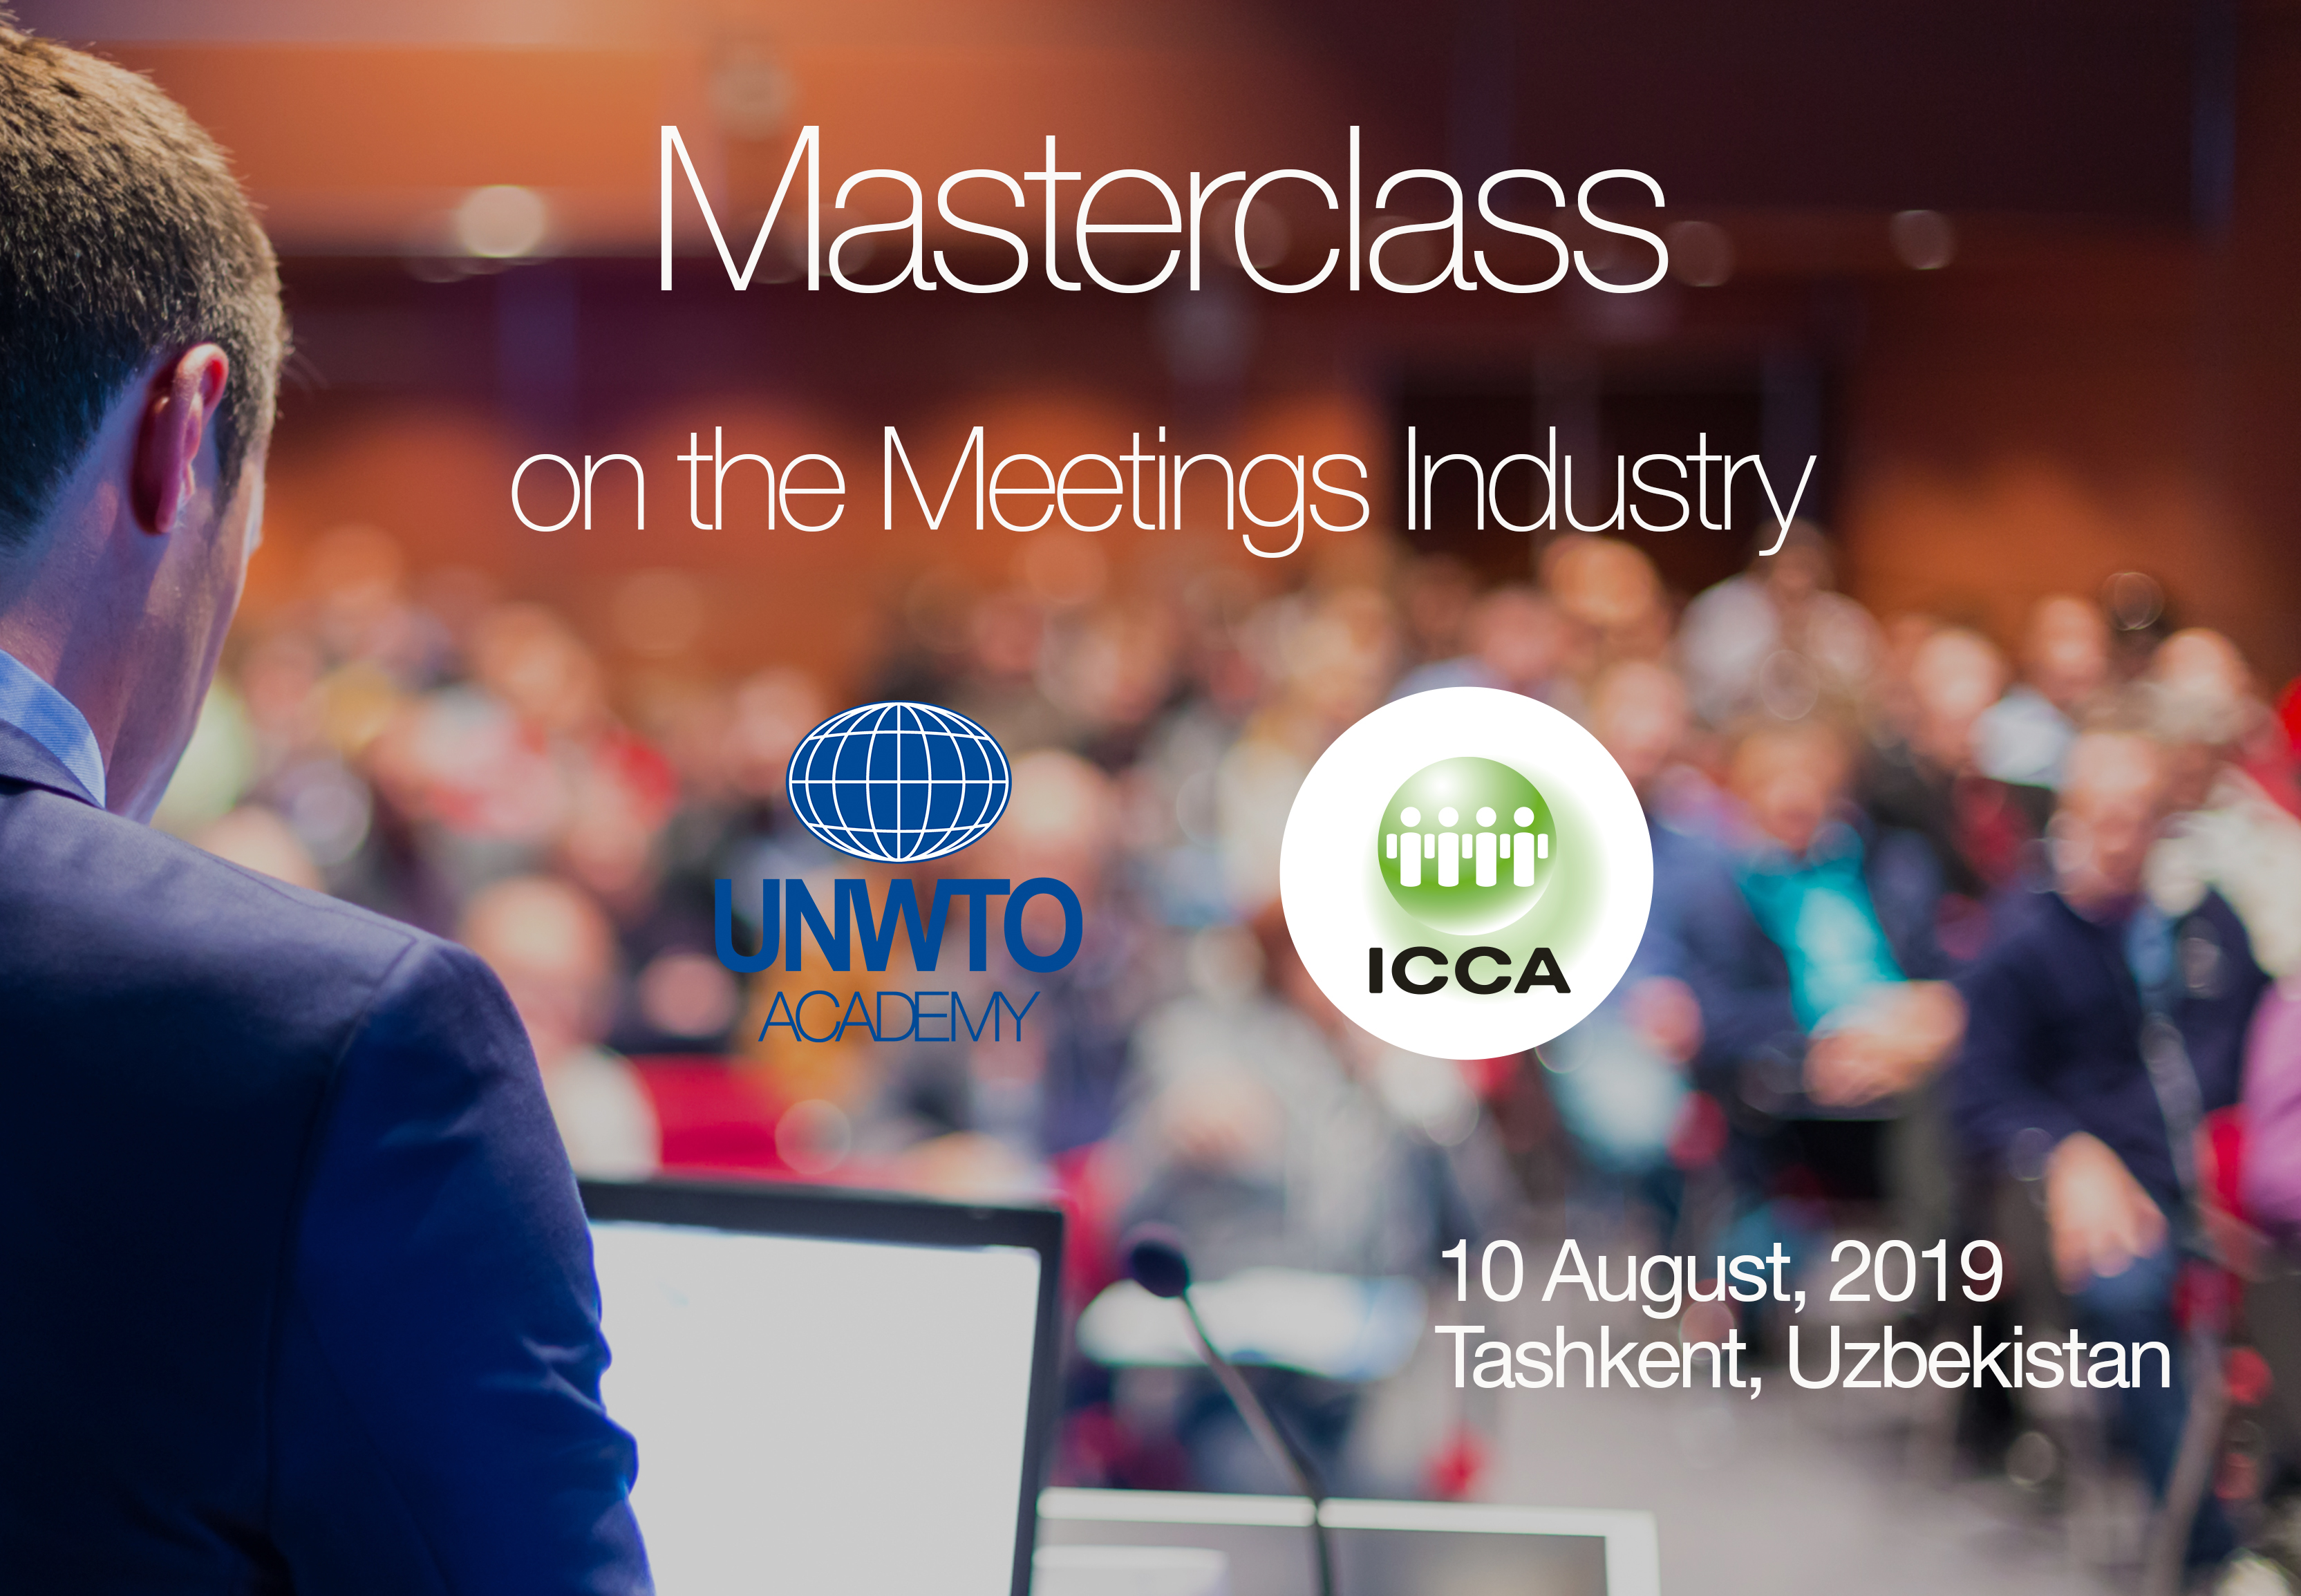 At the request of the State Committee for Tourism of Uzbekistan, UNWTO Academy and ICCA (a UNWTO Affiliate Member) are to host on Saturday 10 August, in Tashkent, Uzbekistan their first Masterclass on the Meetings Industry.